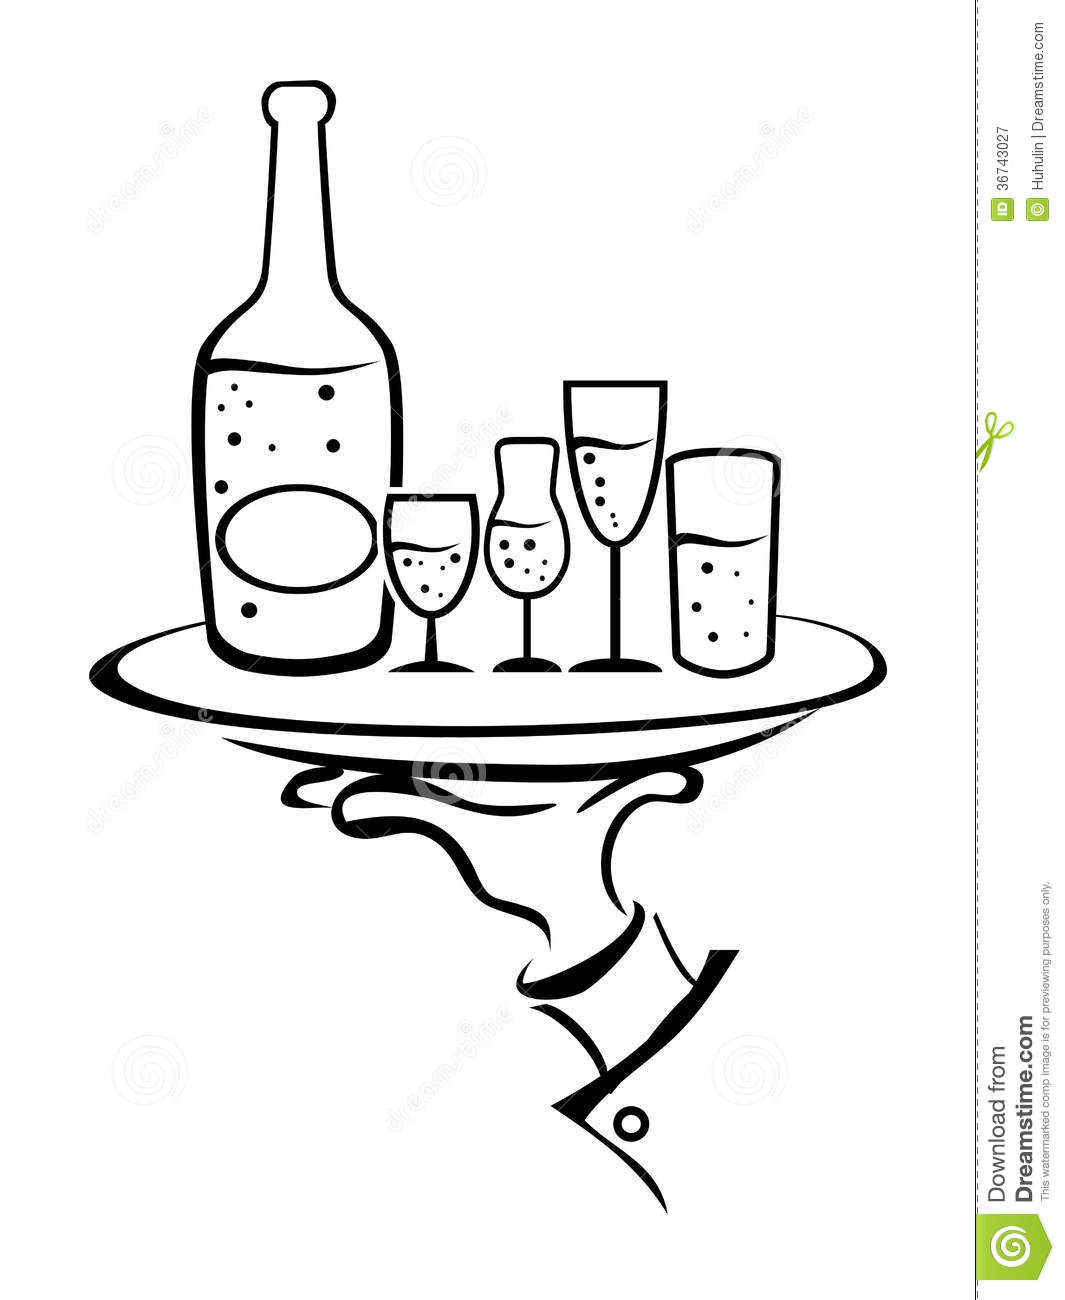 Cocktail glass outline